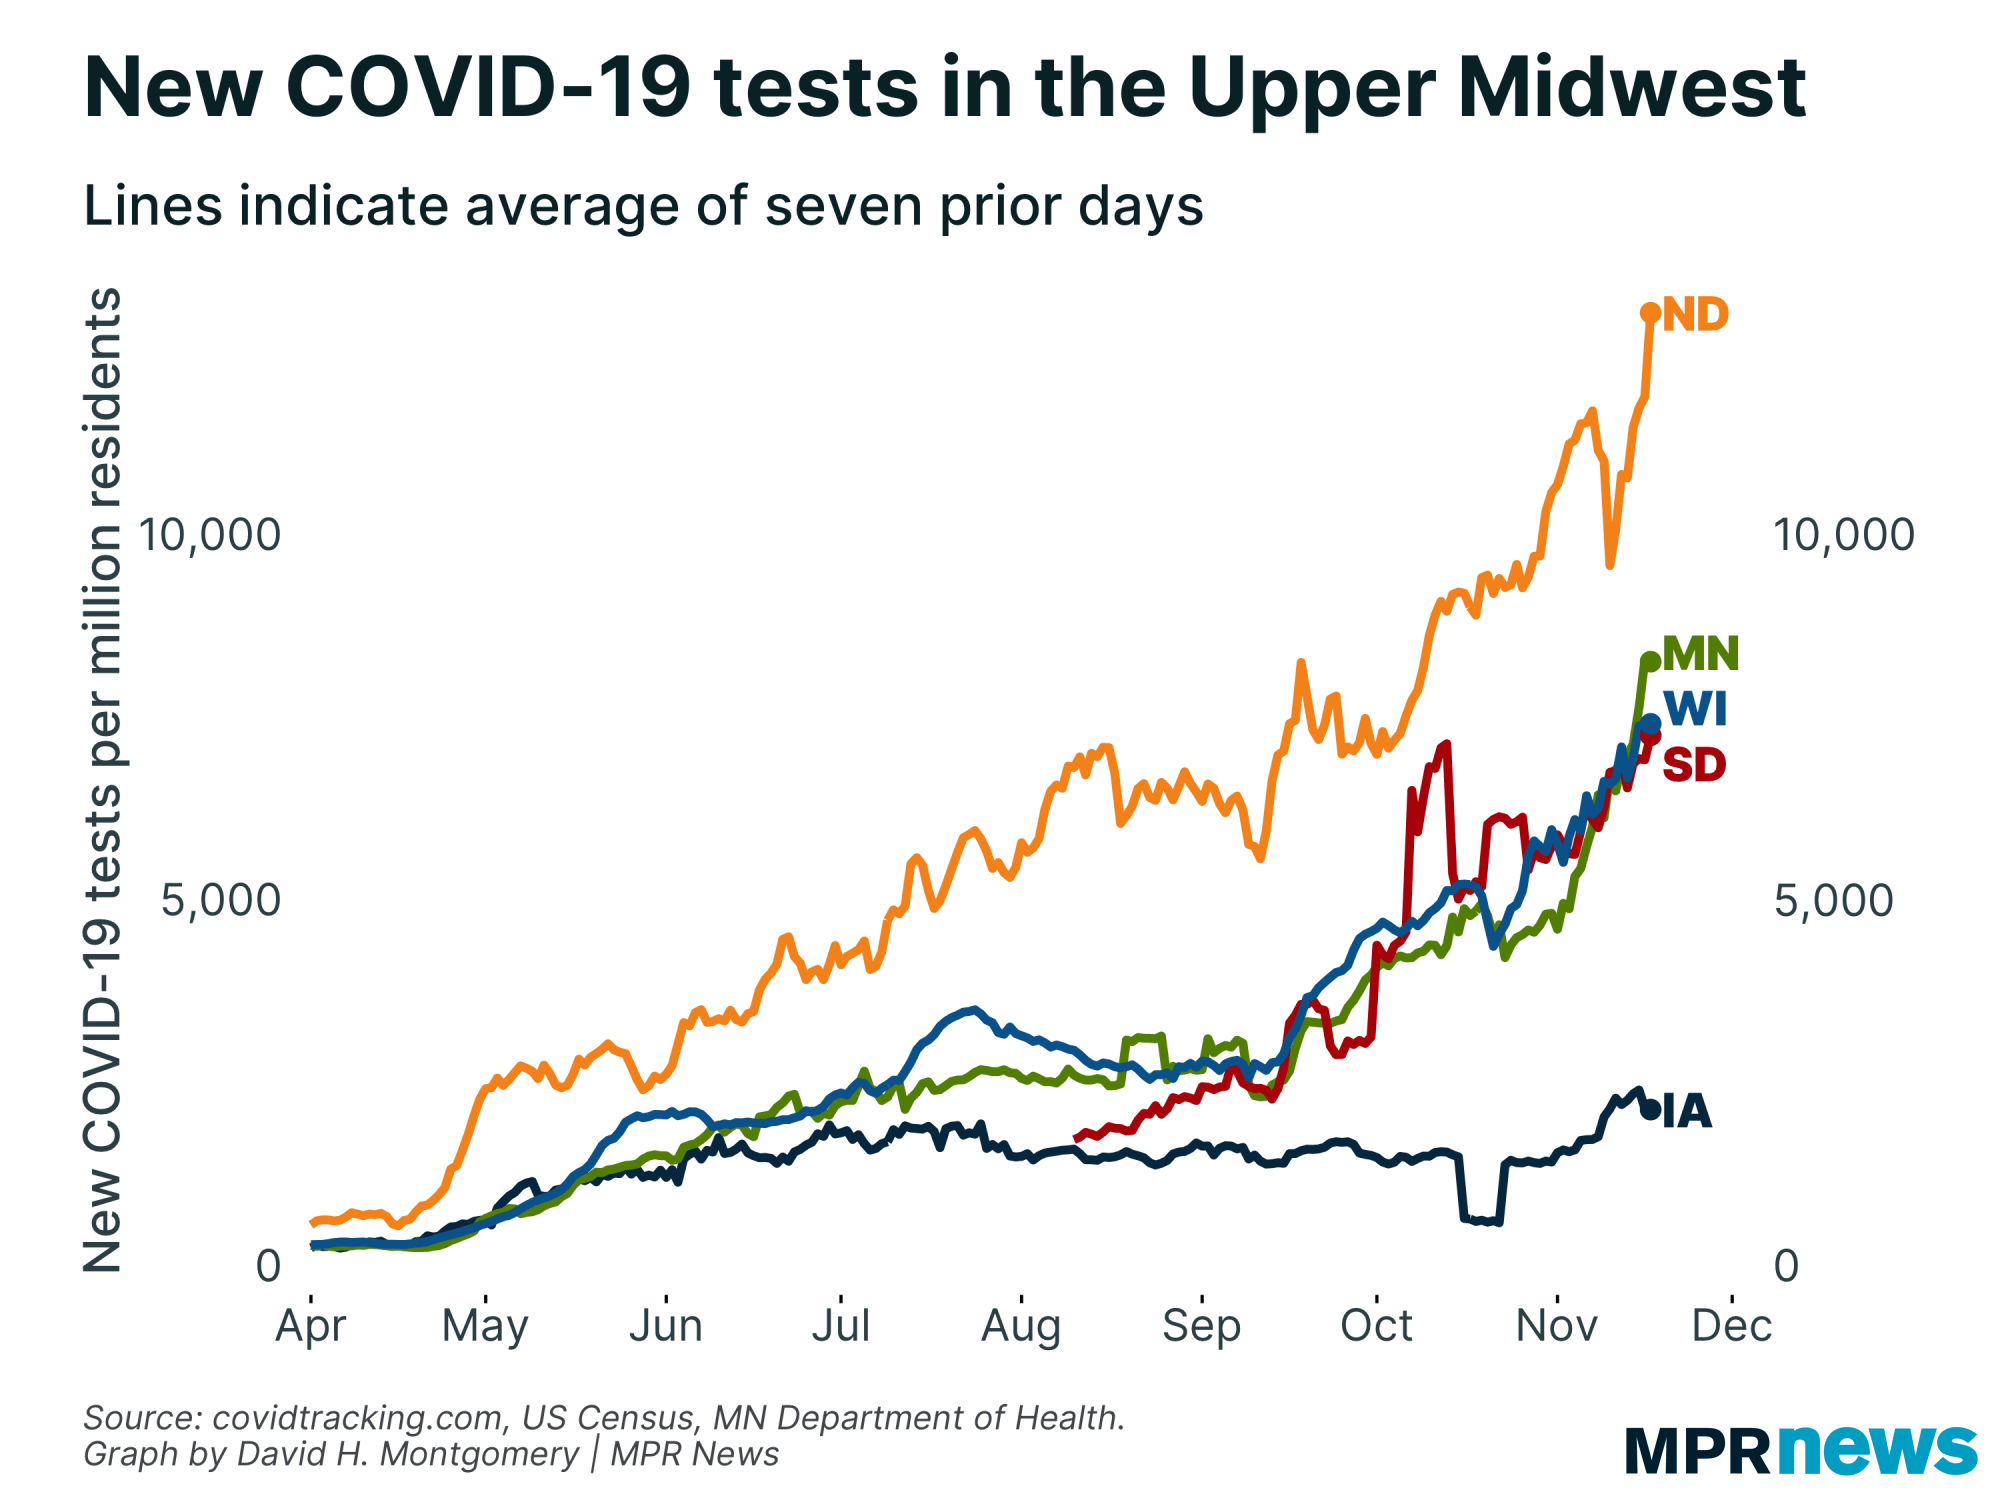 New COVID-19 tests per capita in the Upper Midwest